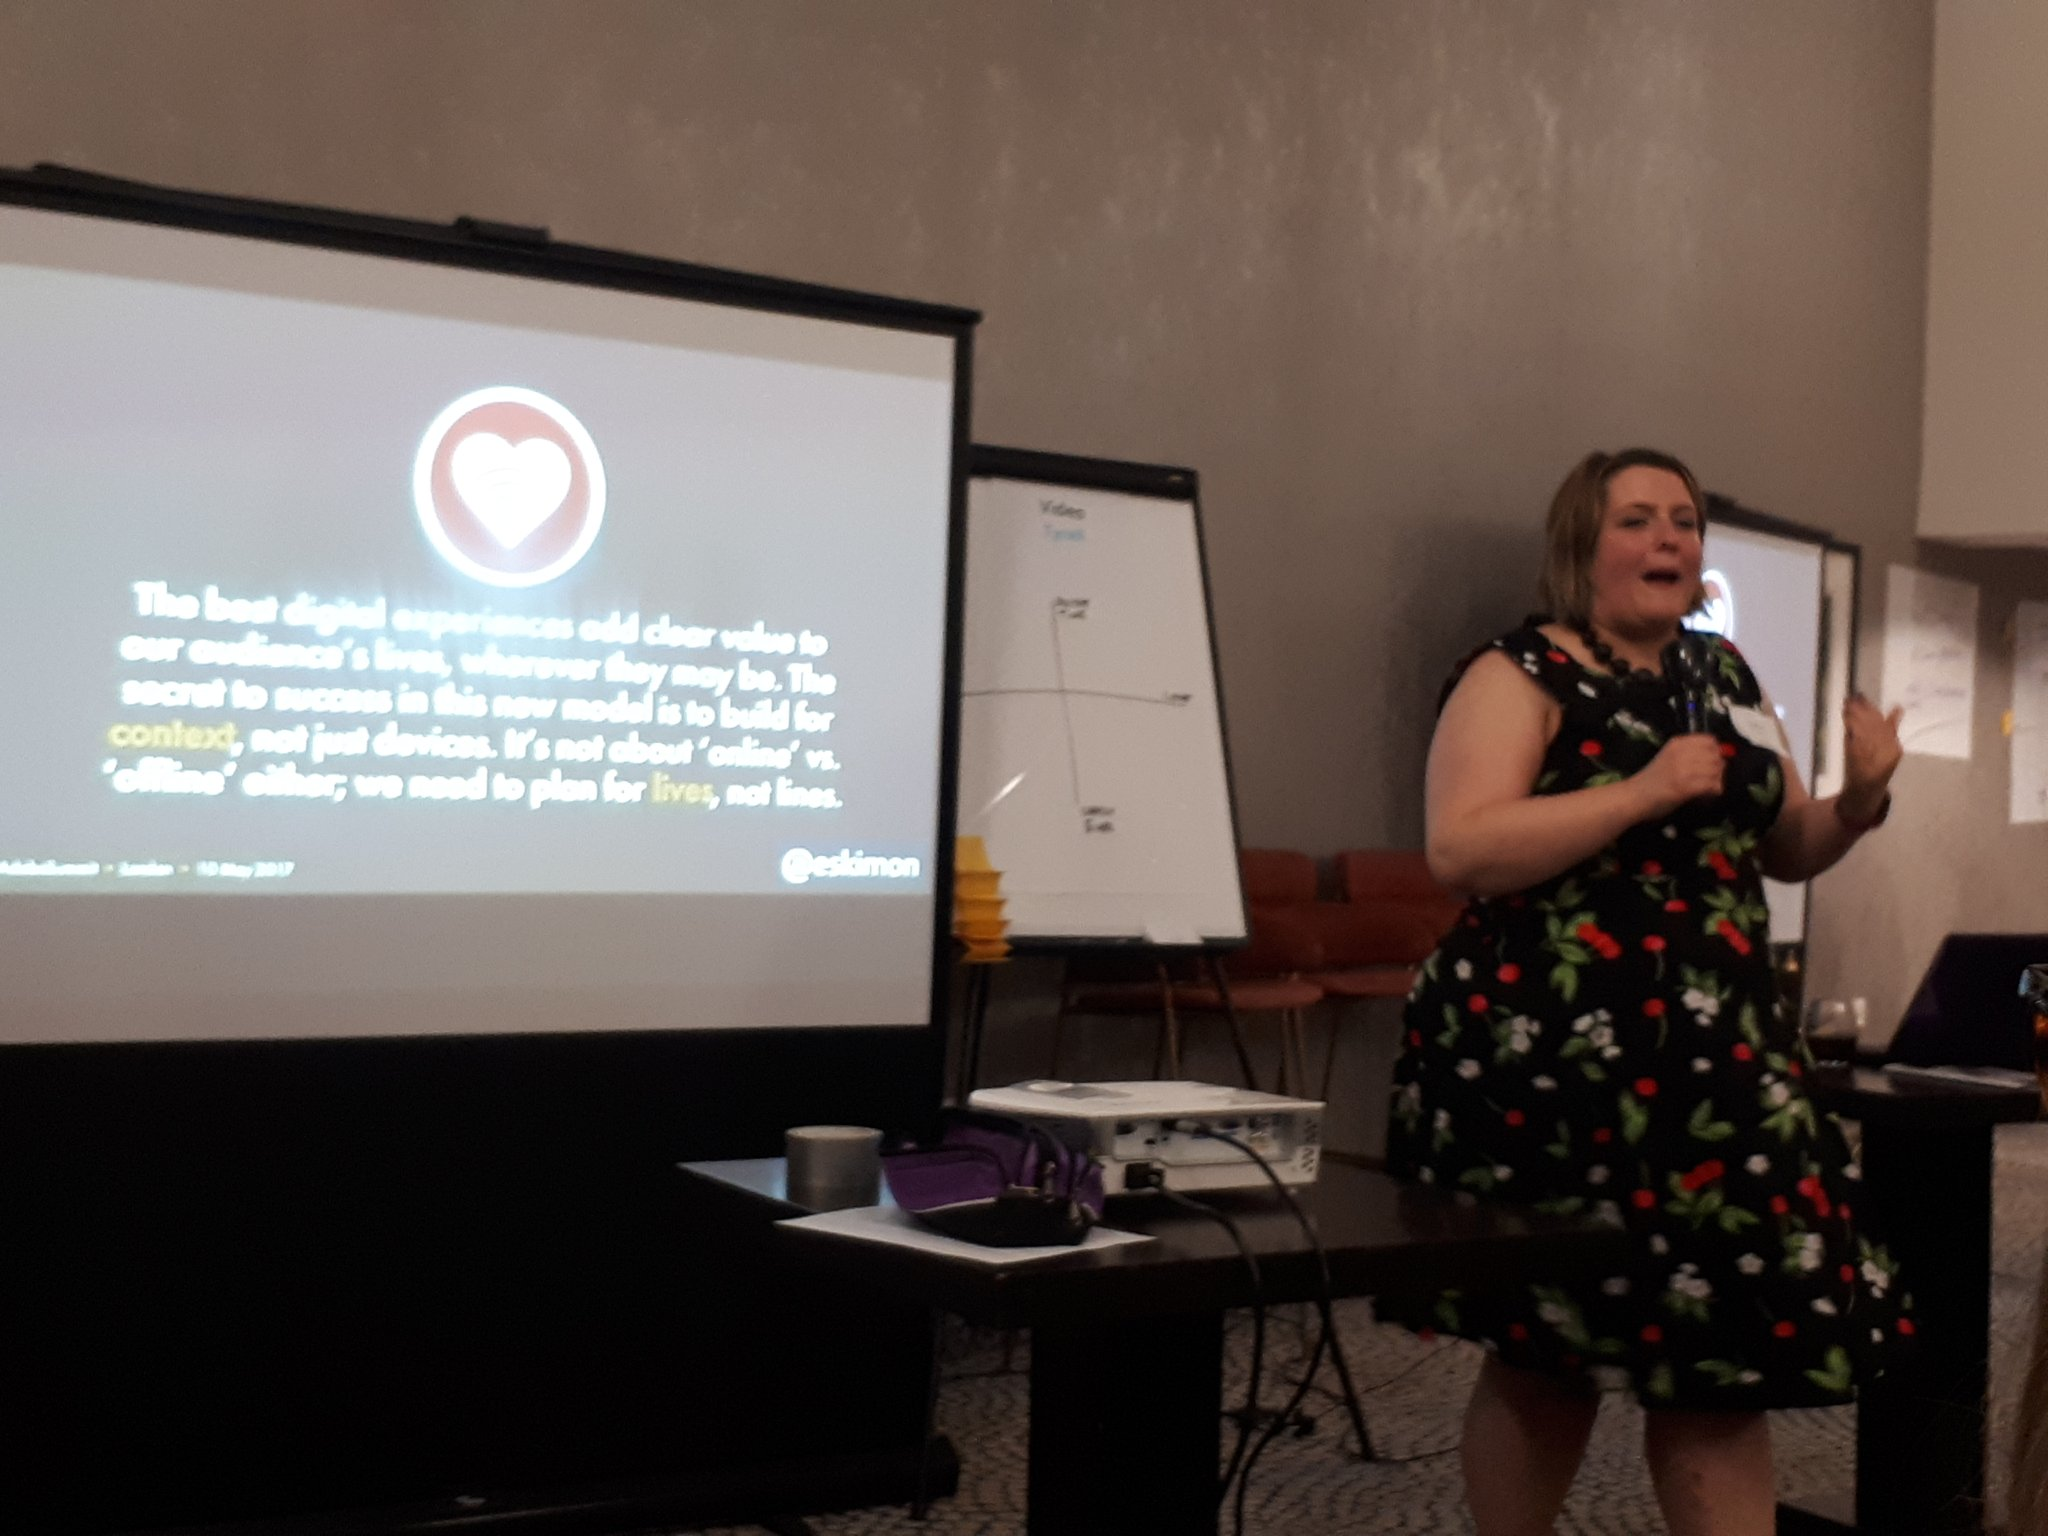 Kicking off #CharityMeetup is @goreckidawn - it's not just about the tools, the shiny new things. https://t.co/BPKLacuKPH